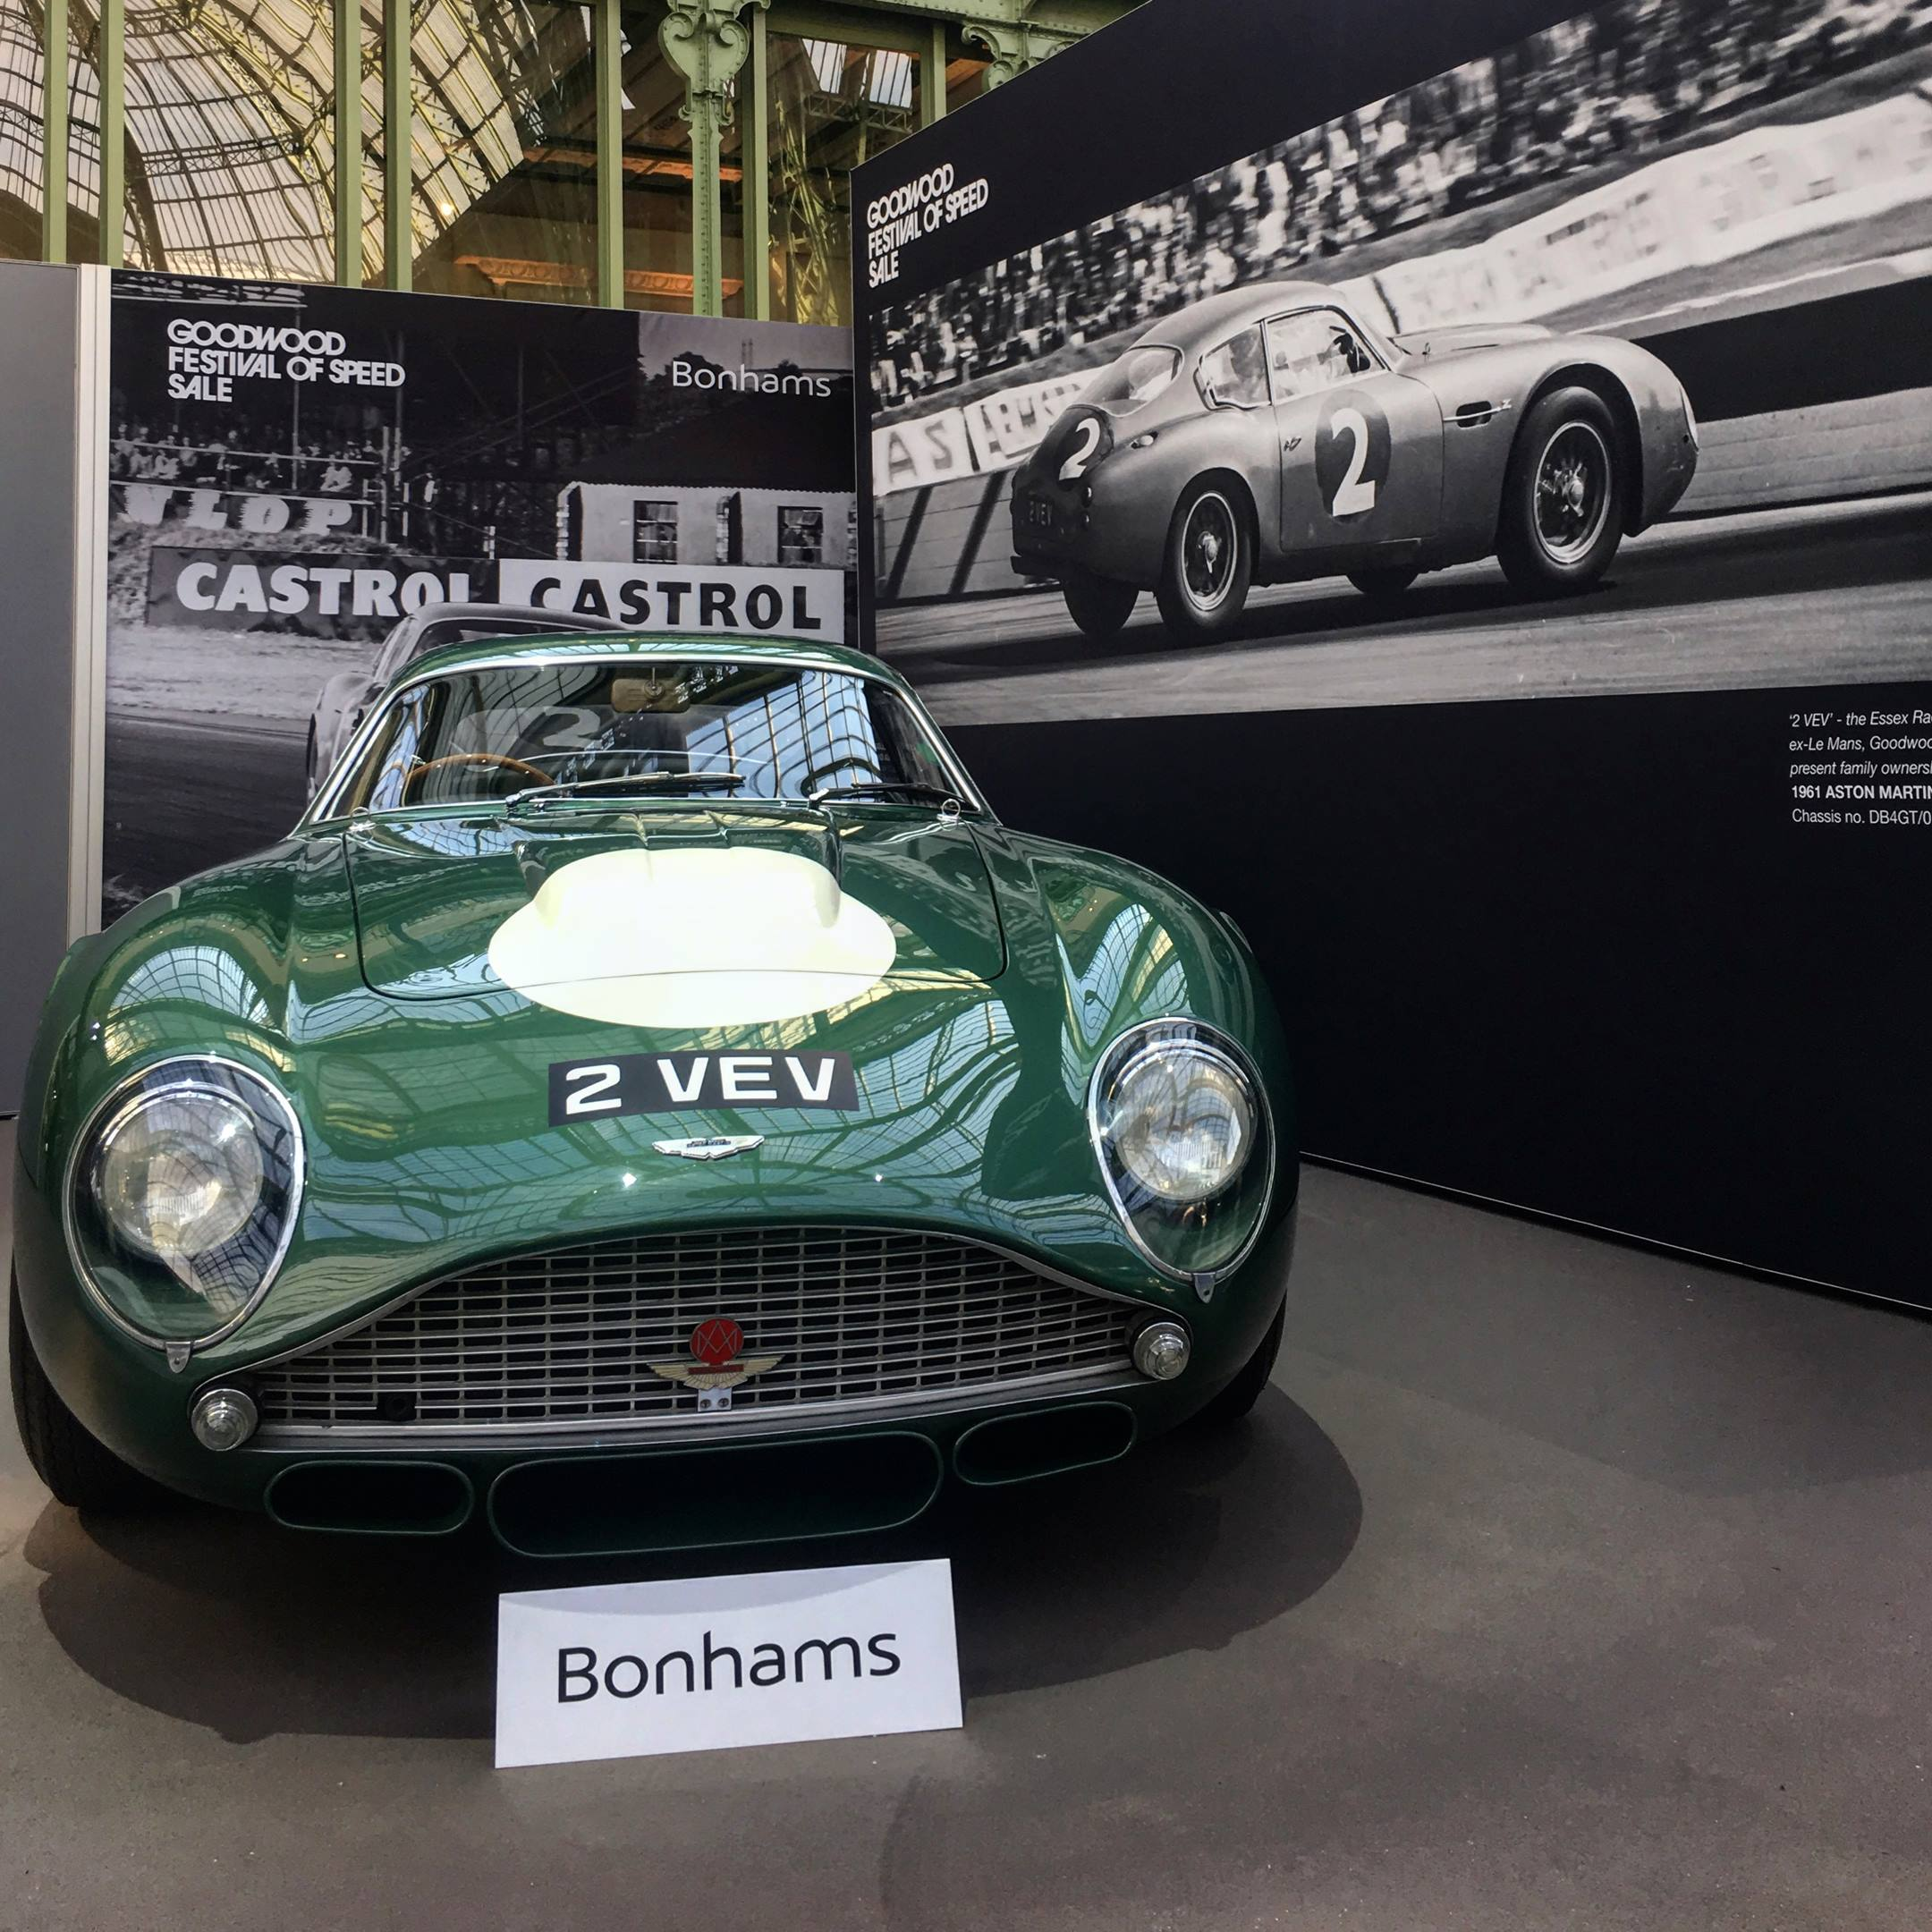 1961 Aston Martin DB4GT Zagato '2 VEV' on display by Bonhams